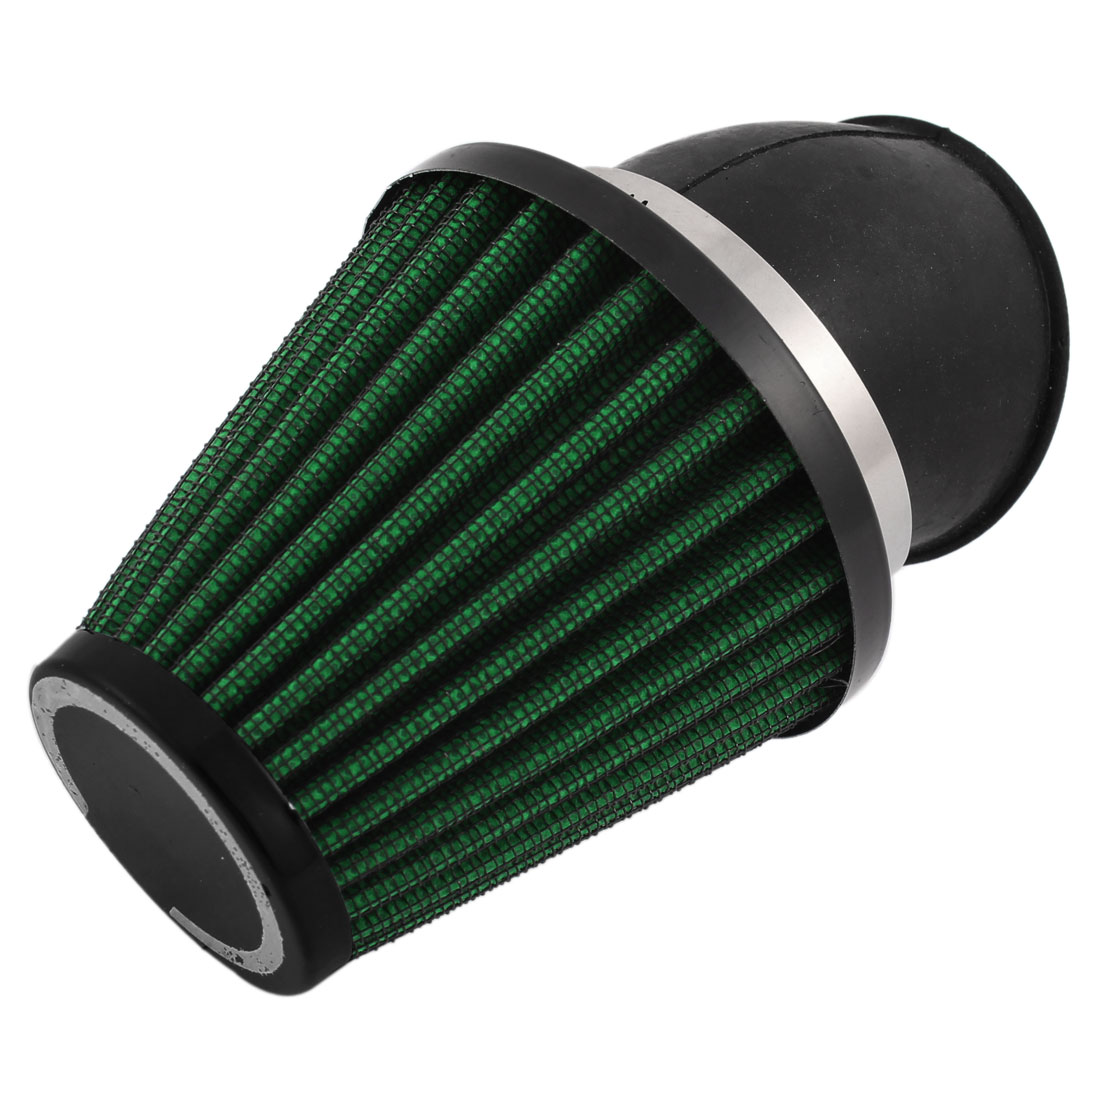 38-57mm Clamp Flange Motorcycle Air Intake Filter Cleaner Muffler Green